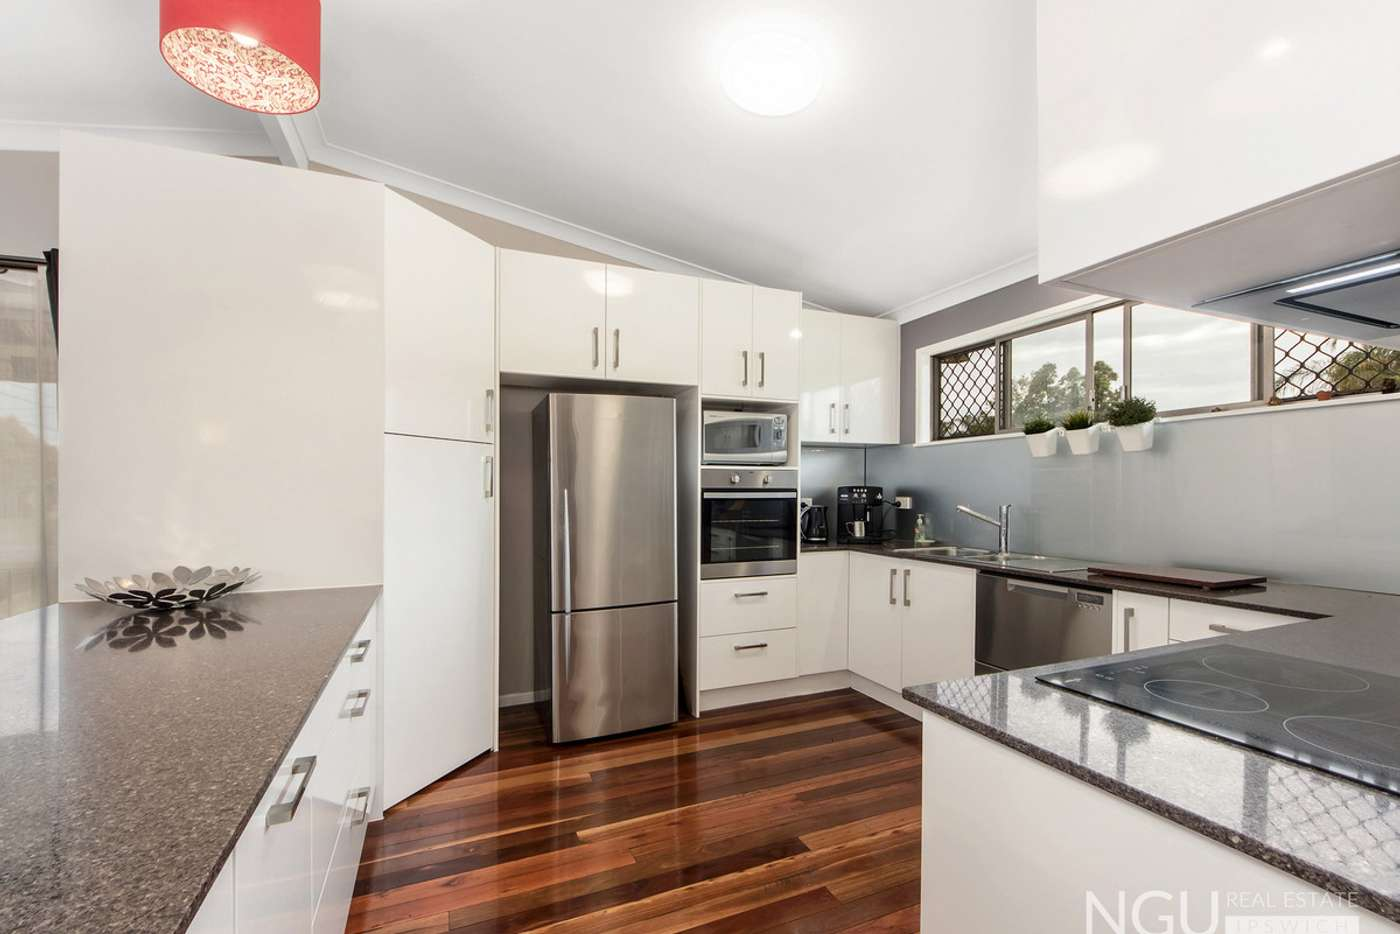 Fifth view of Homely house listing, 42 Ironbark Crescent, Raceview QLD 4305